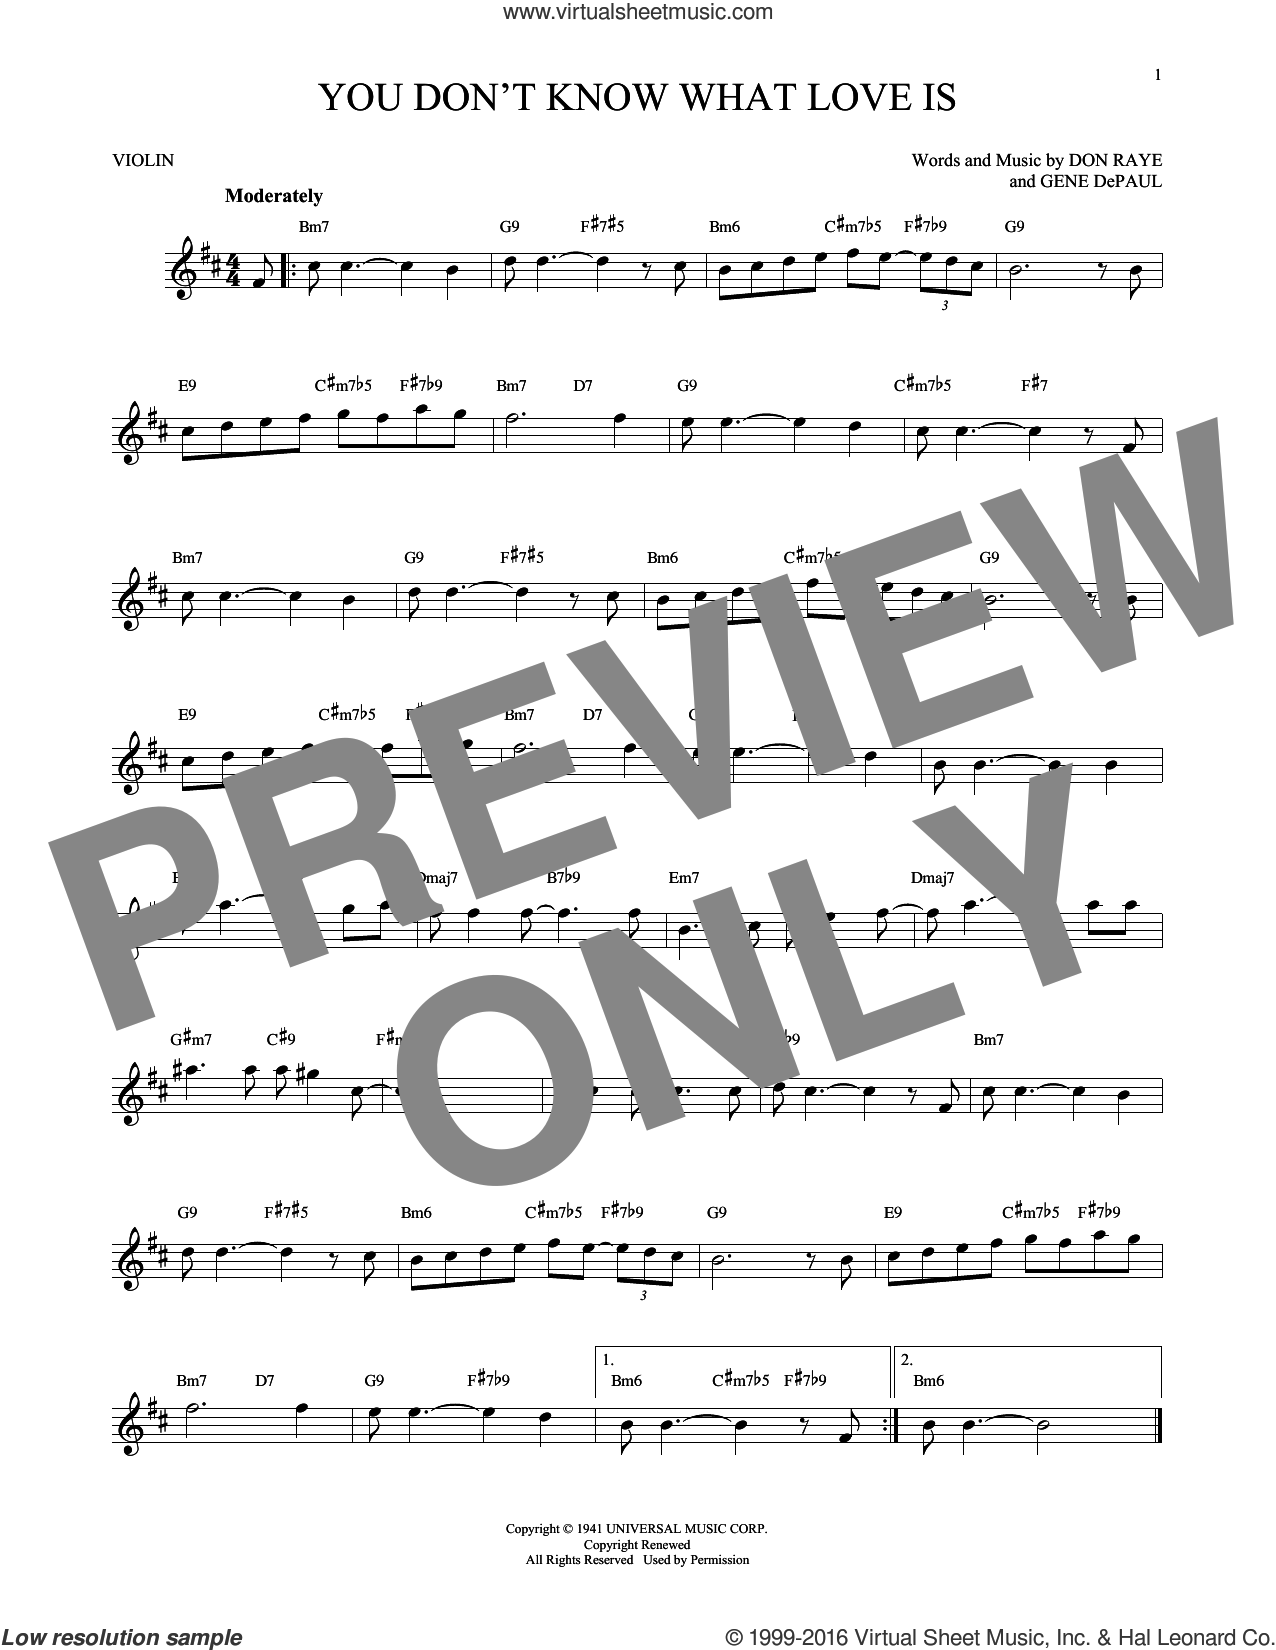 You Don't Know What Love Is sheet music for violin solo by Don Raye, Carol Bruce and Gene DePaul, intermediate skill level